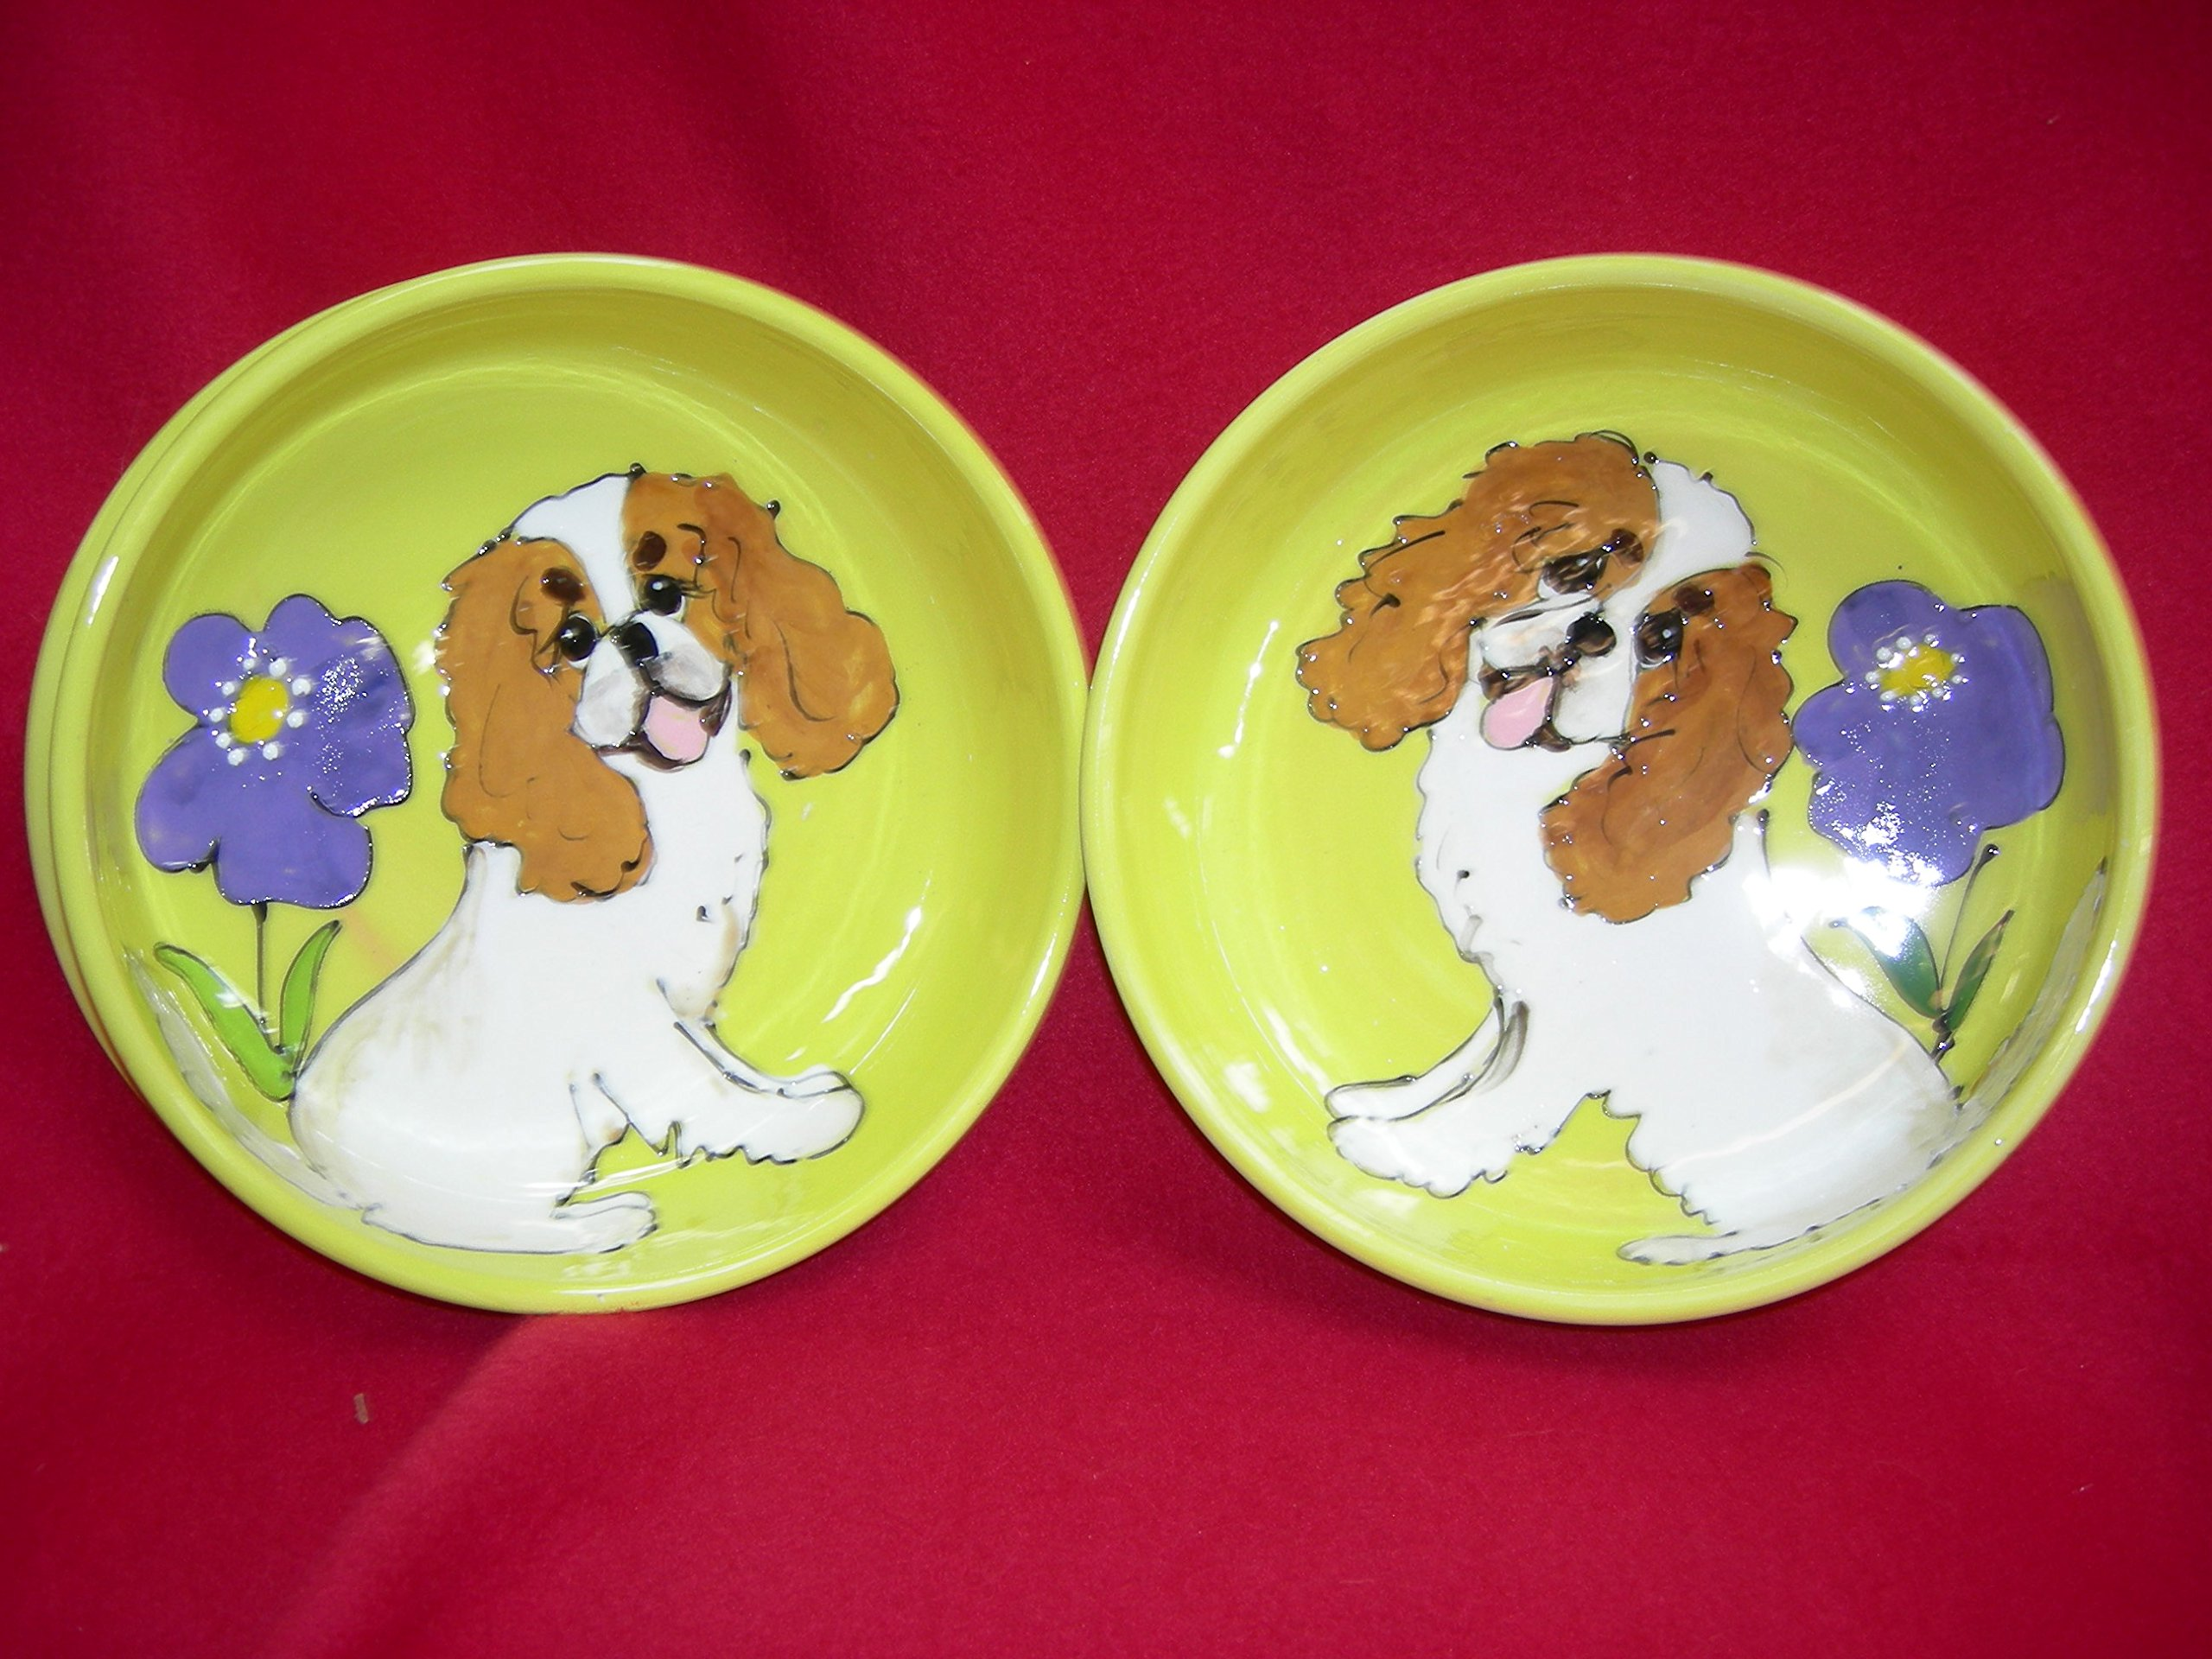 King Charles Cavalier 8''/6'' Pet Bowls for Food/Water. Personalized at no Charge. Signed by Artist, Debby Carman.